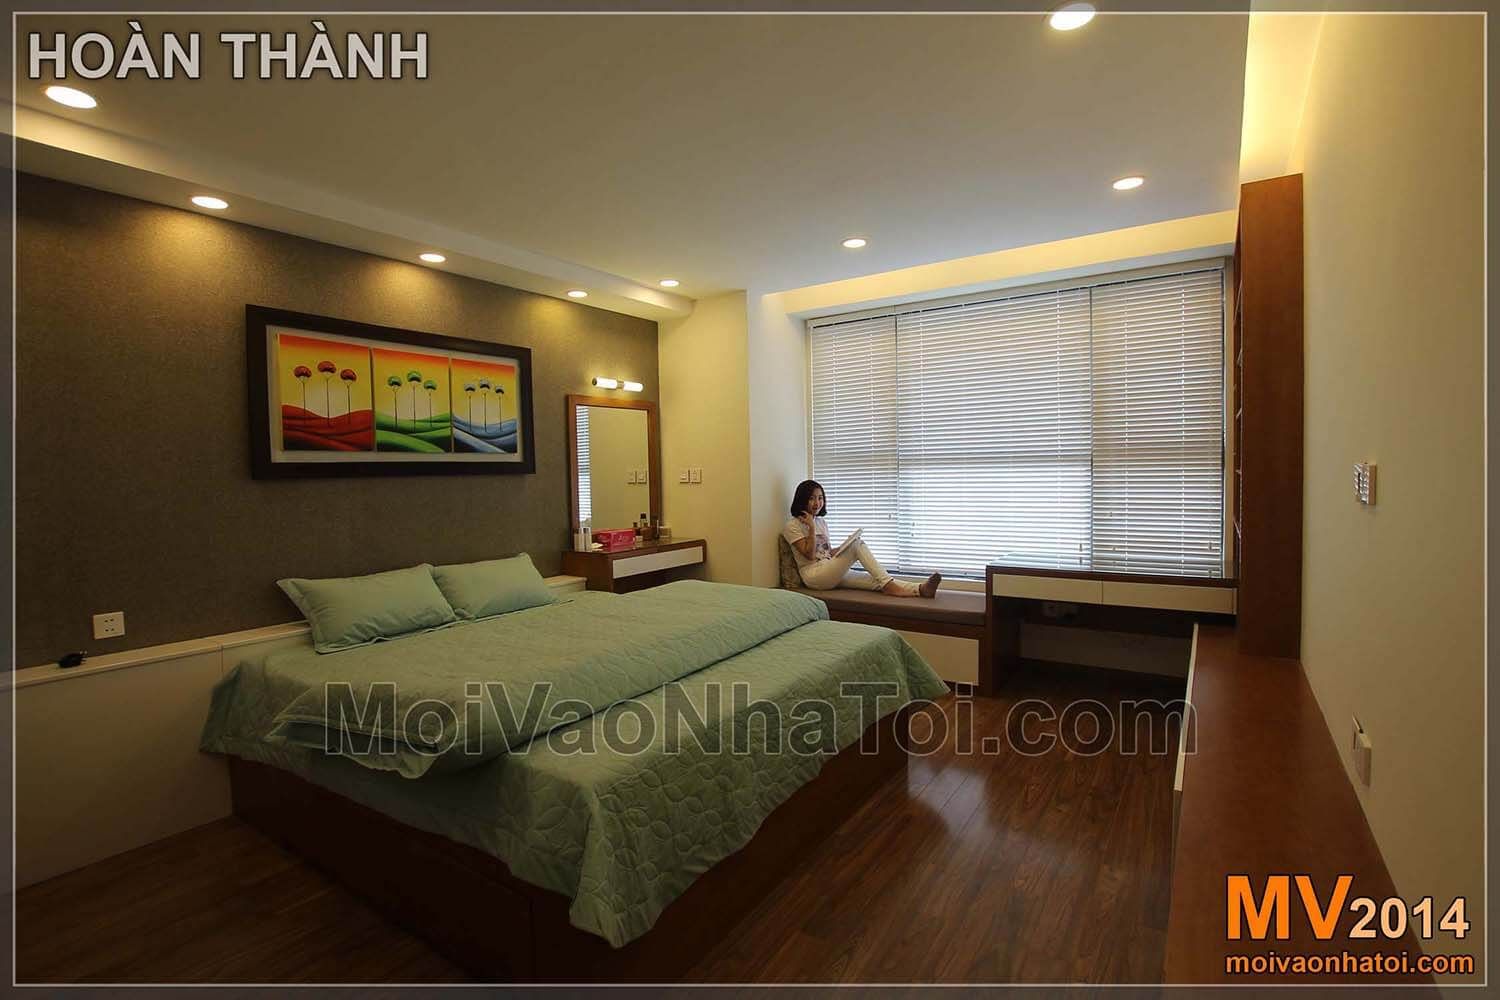 Master bedroom apartment starcity.construction of star city apartment